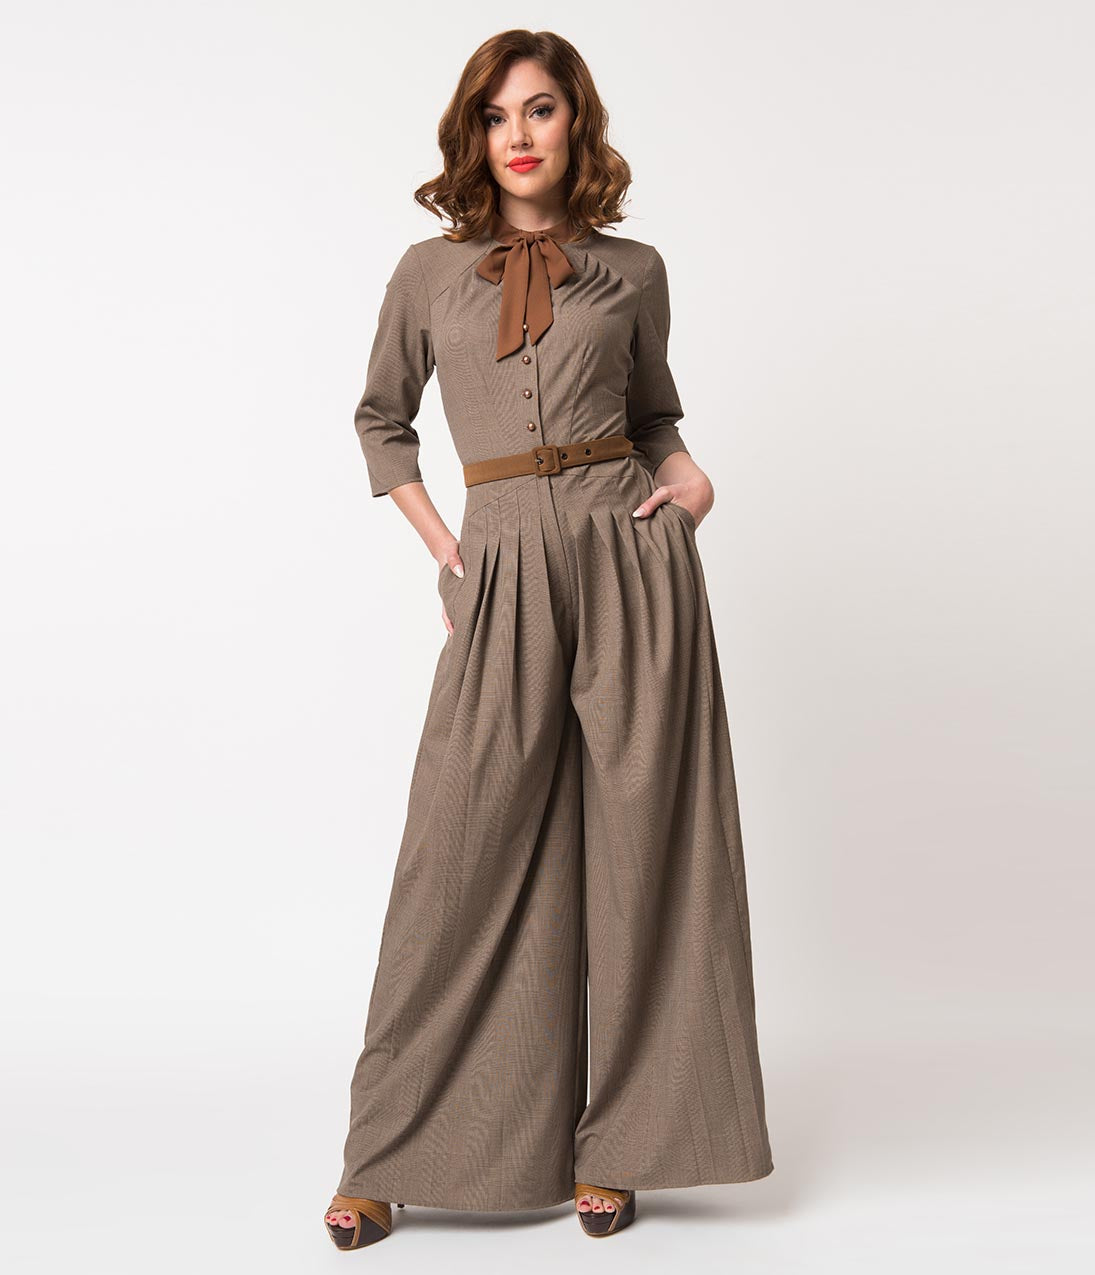 1940s Swing Pants & Sailor Trousers- Wide Leg, High Waist Miss Candyfloss 1940S Brown Glen Check Apolline Wide Leg Jumpsuit $138.00 AT vintagedancer.com